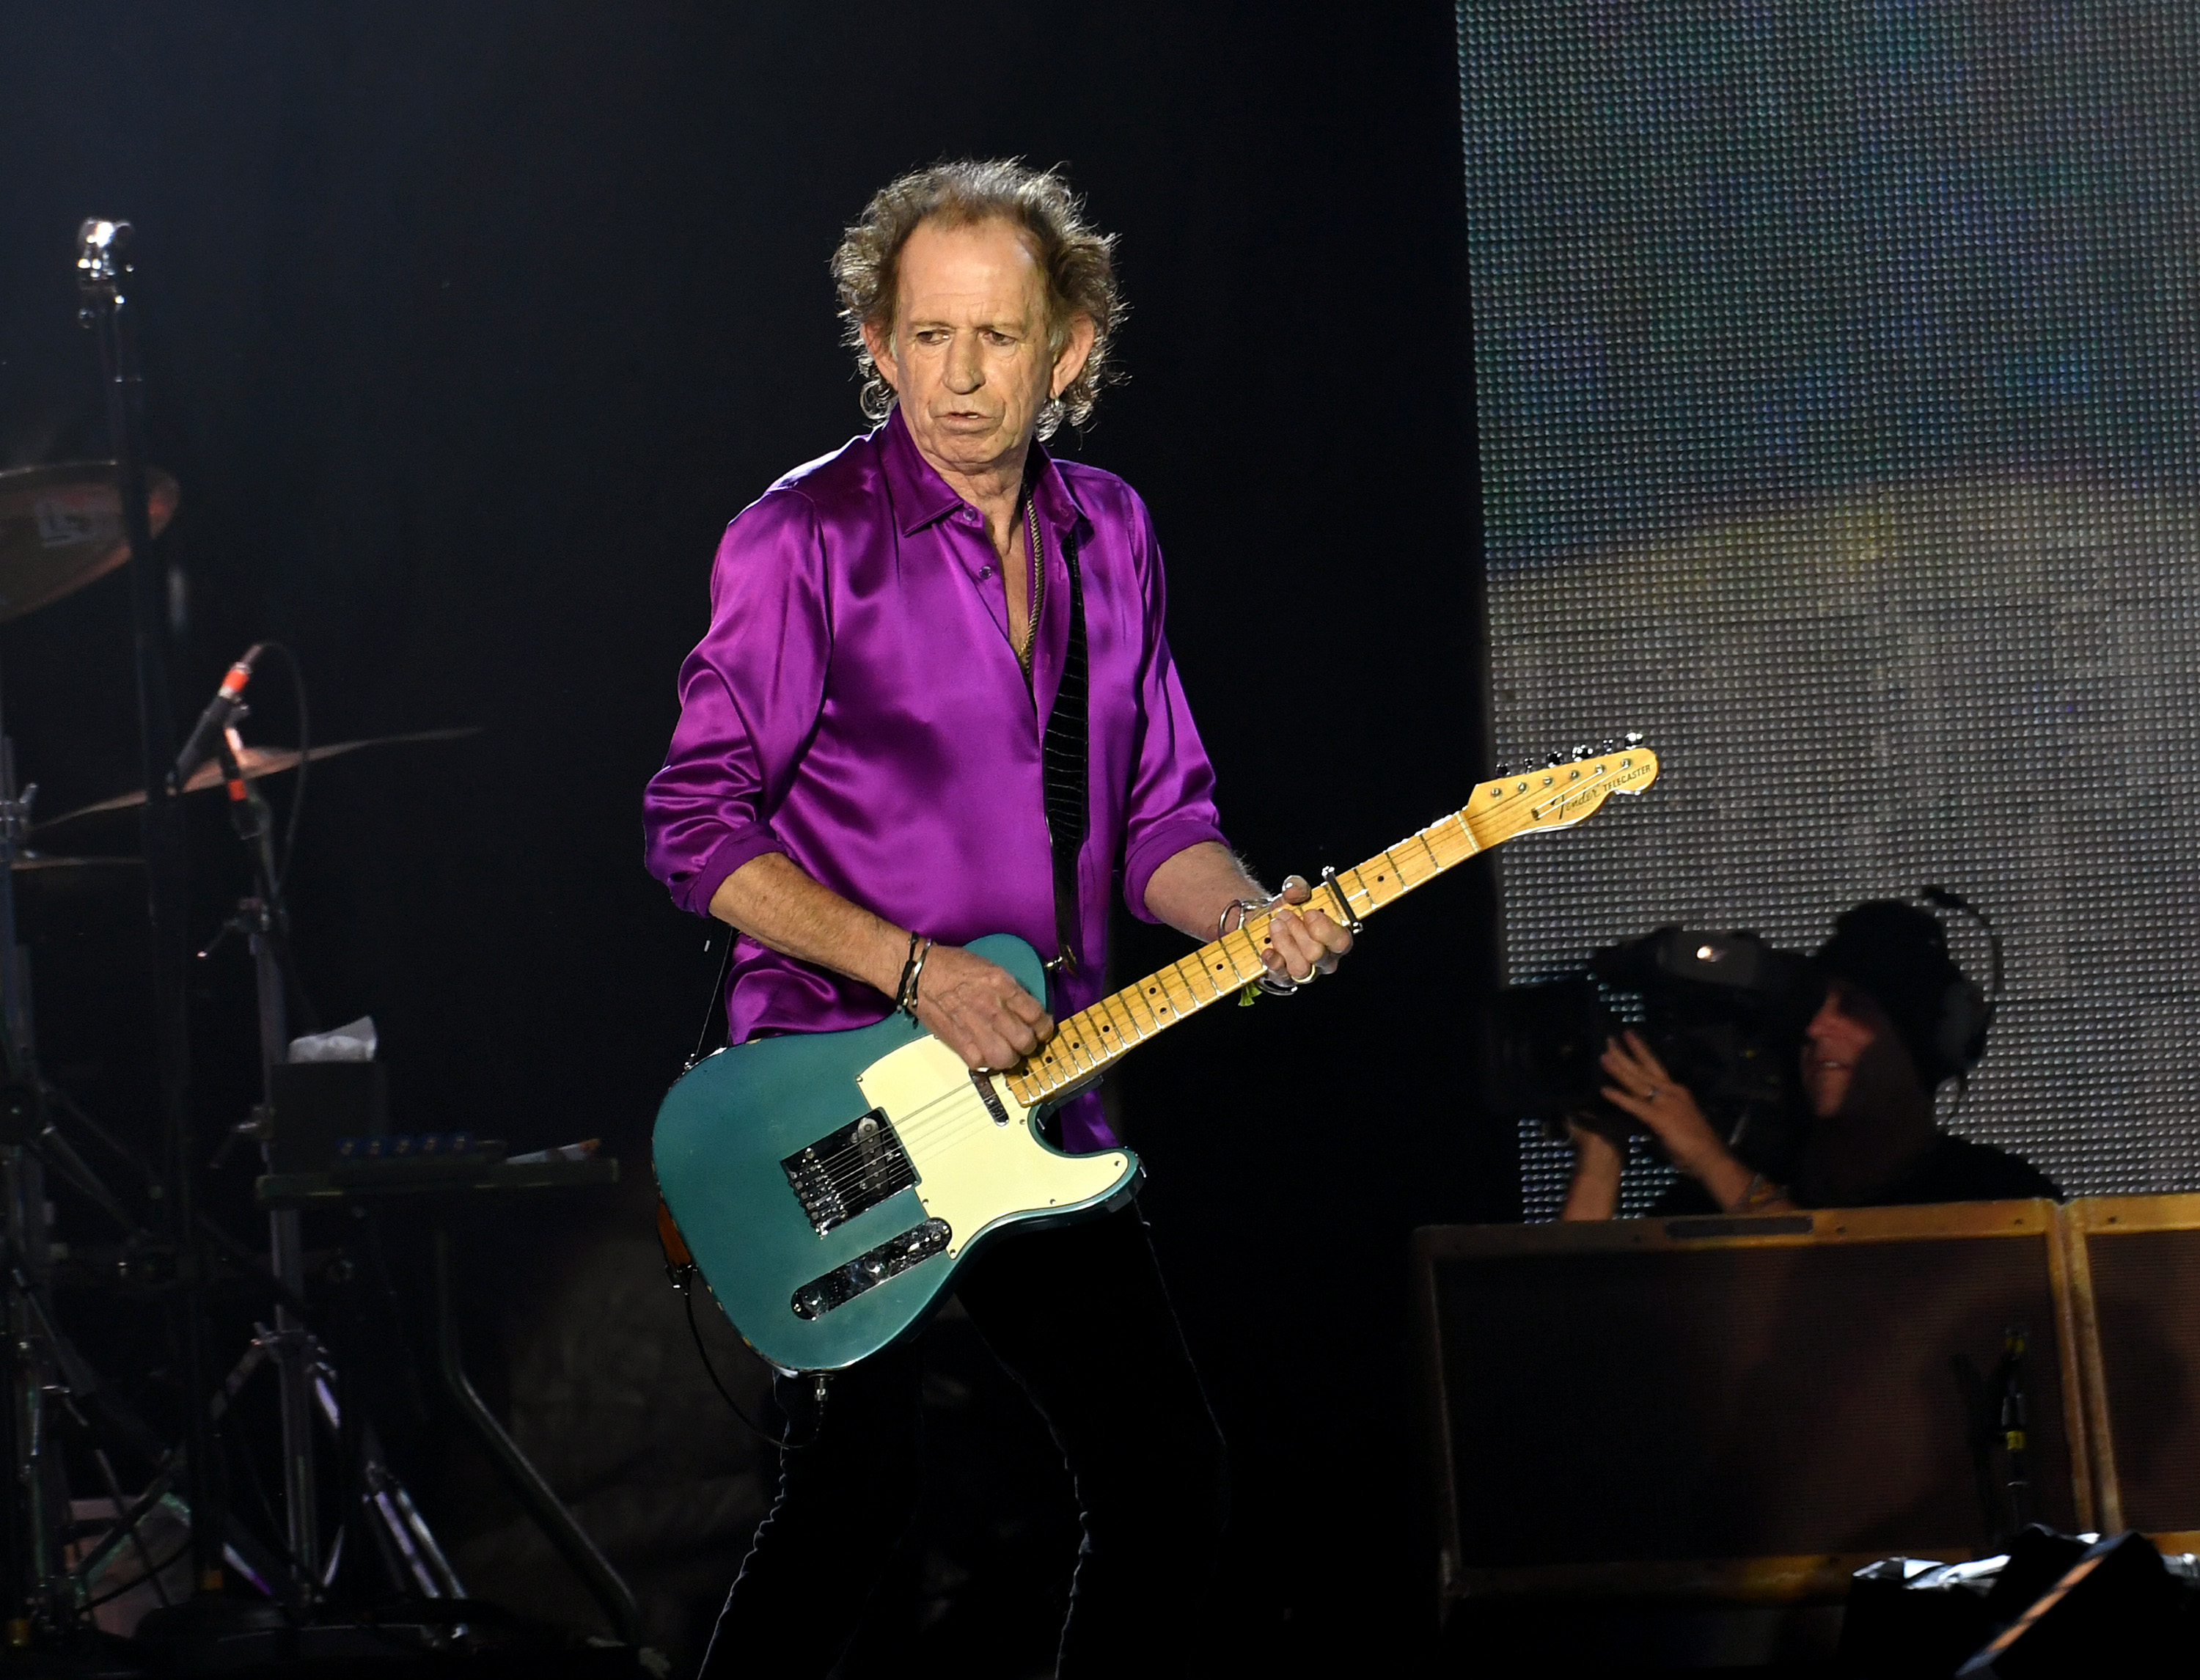 PASADENA, CALIFORNIA - AUGUST 22: Keith Richards of The Rolling Stones performs onstage at Rose Bowl on August 22, 2019 in Pasadena, California. (Photo by Kevin Winter/Getty Images)